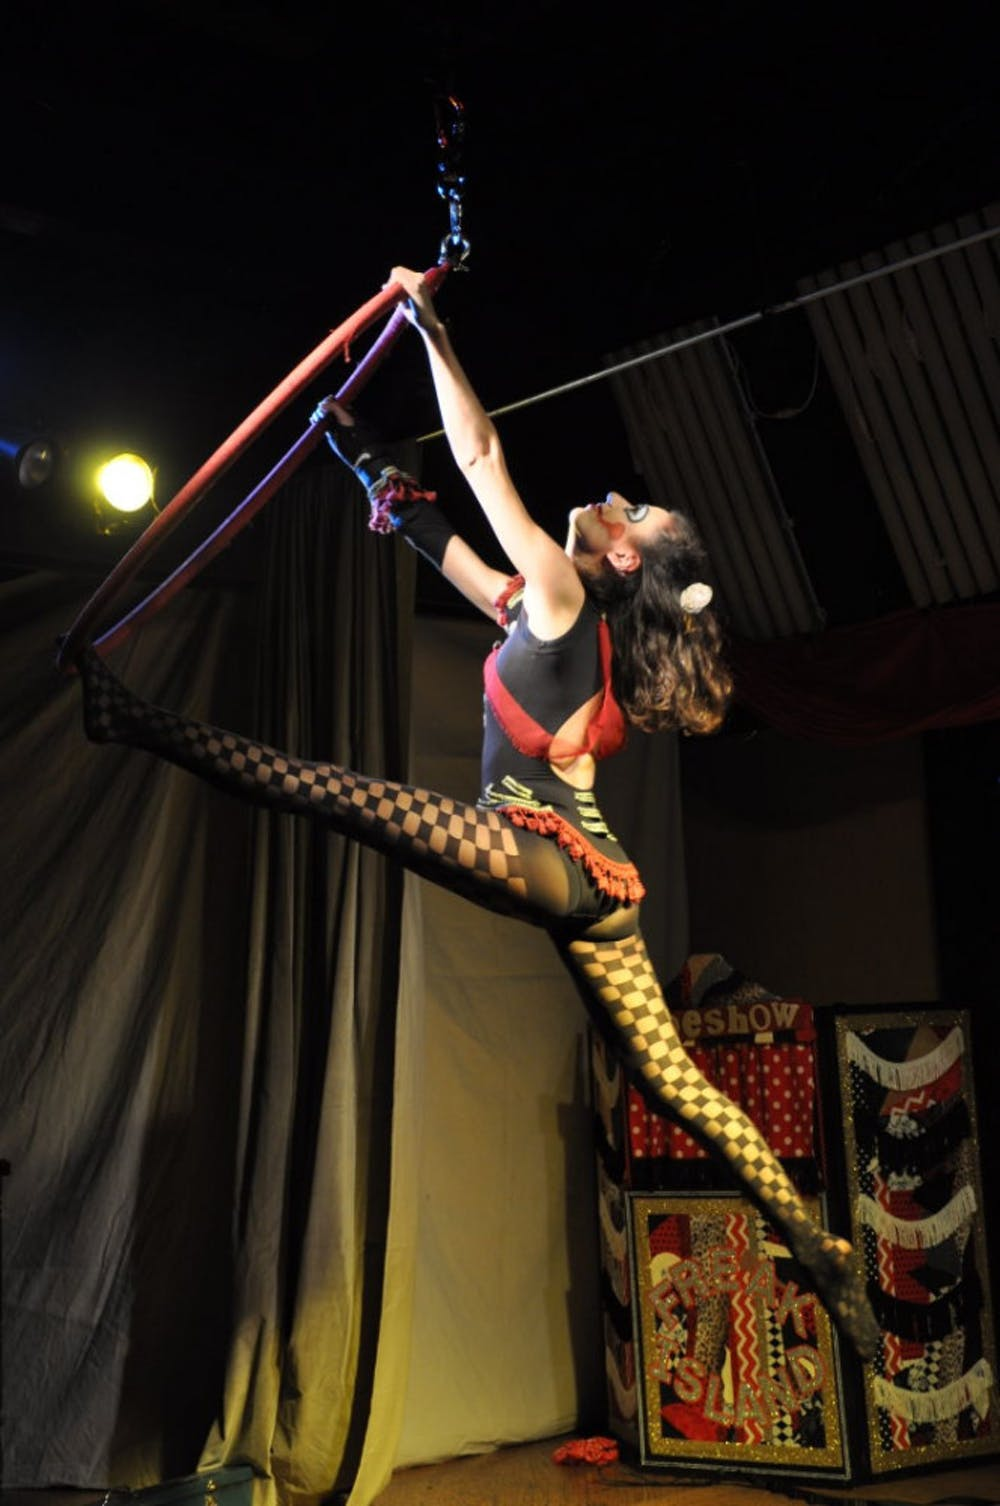 "<p class=""p1"">Lira Linx performs Saturday at Dr. Sinn's Freak Island Musical Sideshow. The show runs again this weekend at The Library at Market Street on Saturday at 7 p.m.</p>"